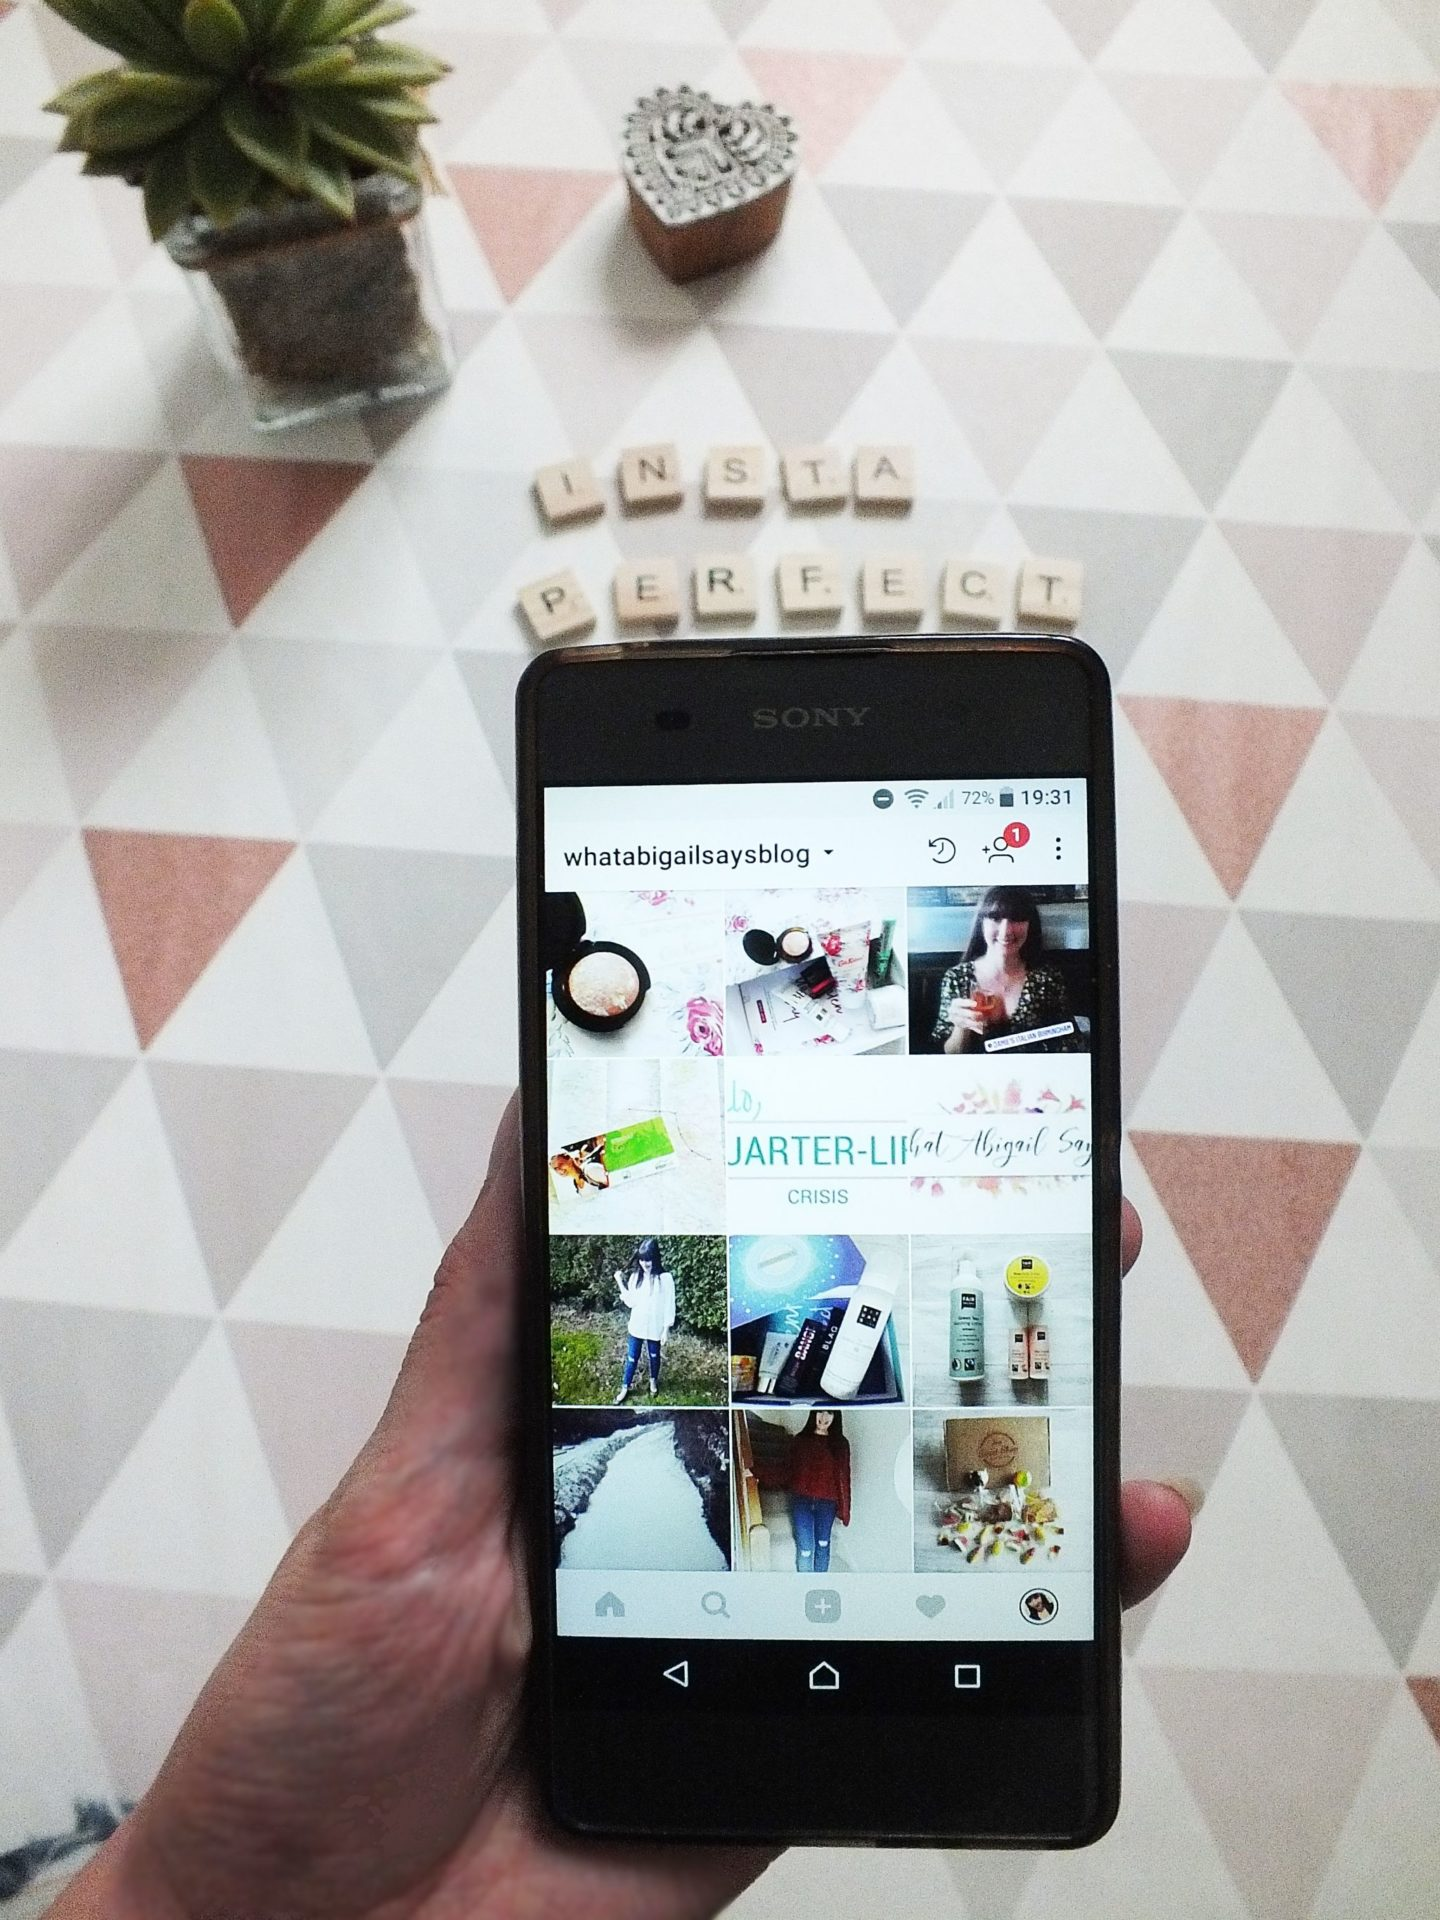 Instagram on phone over flatlay triangle background with scrabble pieces spelling Insta Perfect